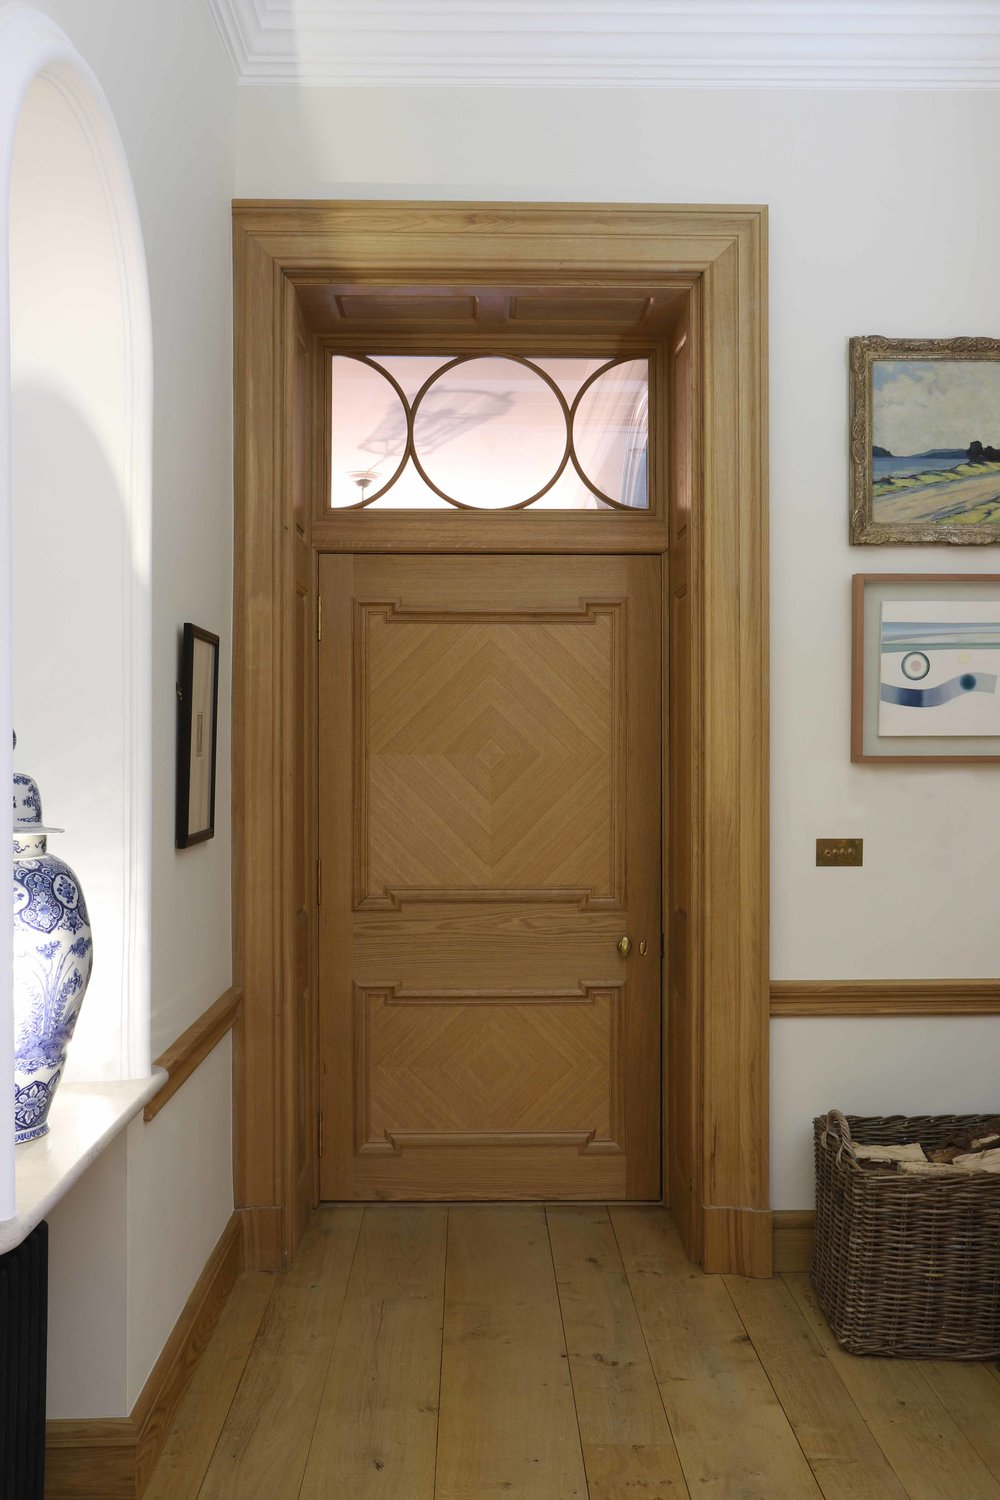 Internal door, glazed section with circular astragals, Oiled oak, Marchmont house.